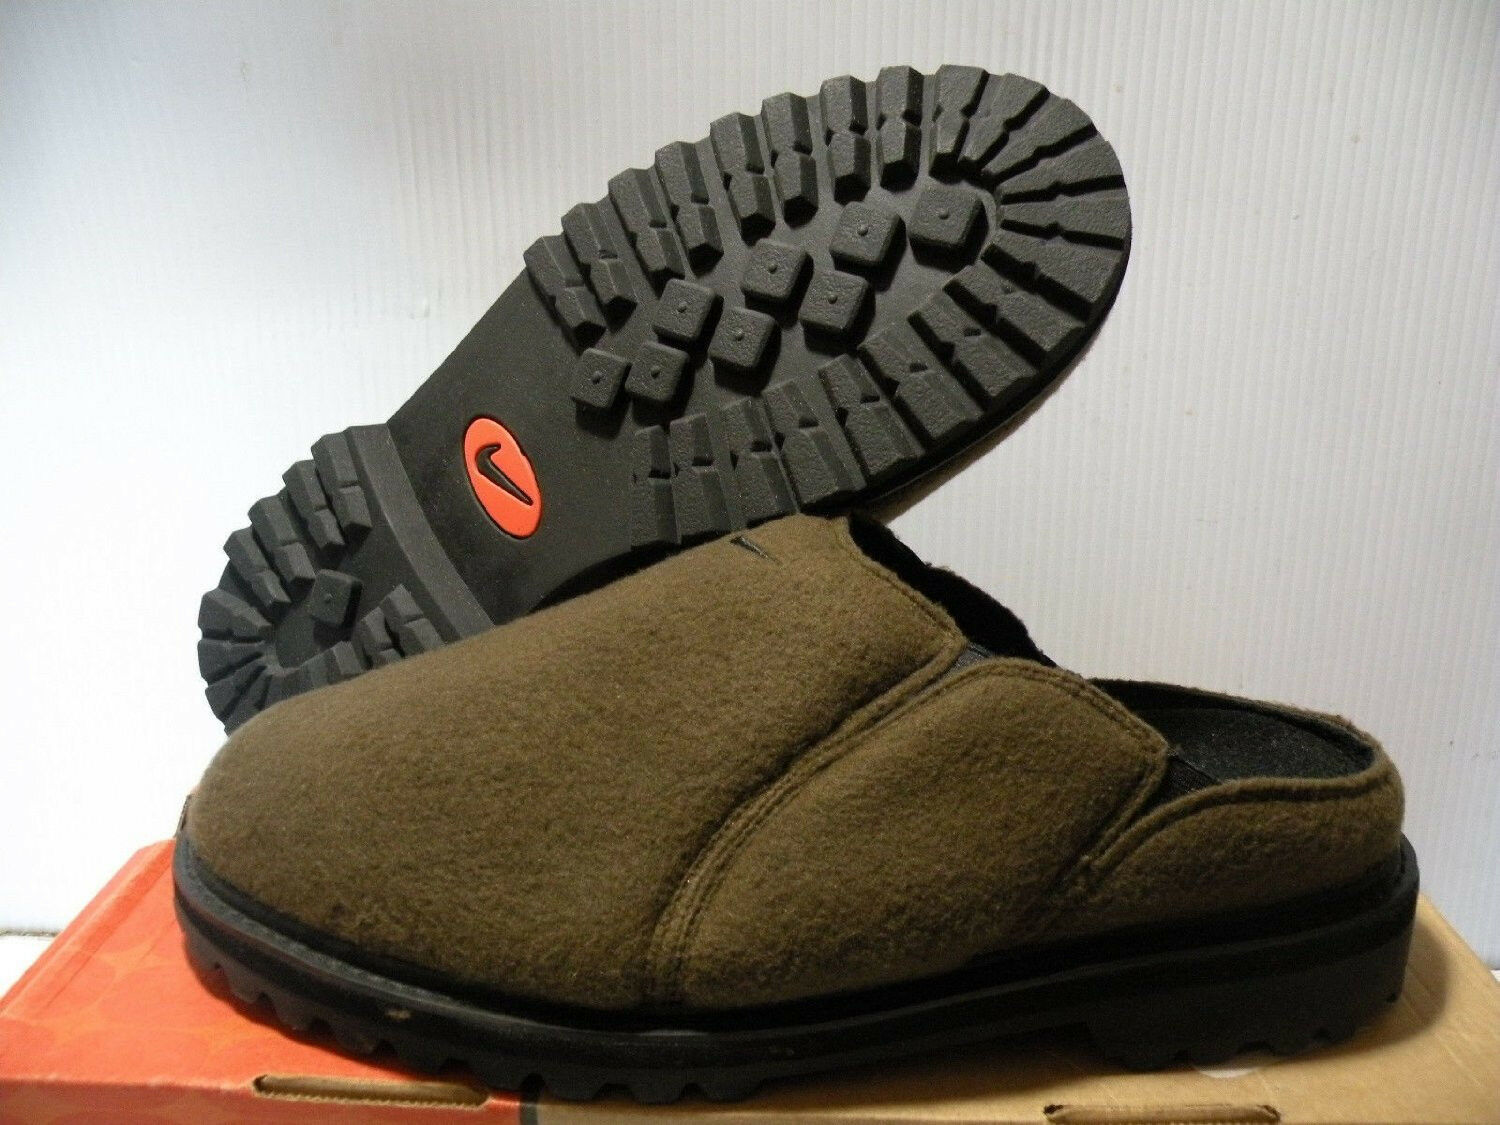 NIKE THE ADAPTER CLOG WOOL SLIPPERS MEN SHOES BROWN 142053-301 SIZE 6.5 NEW